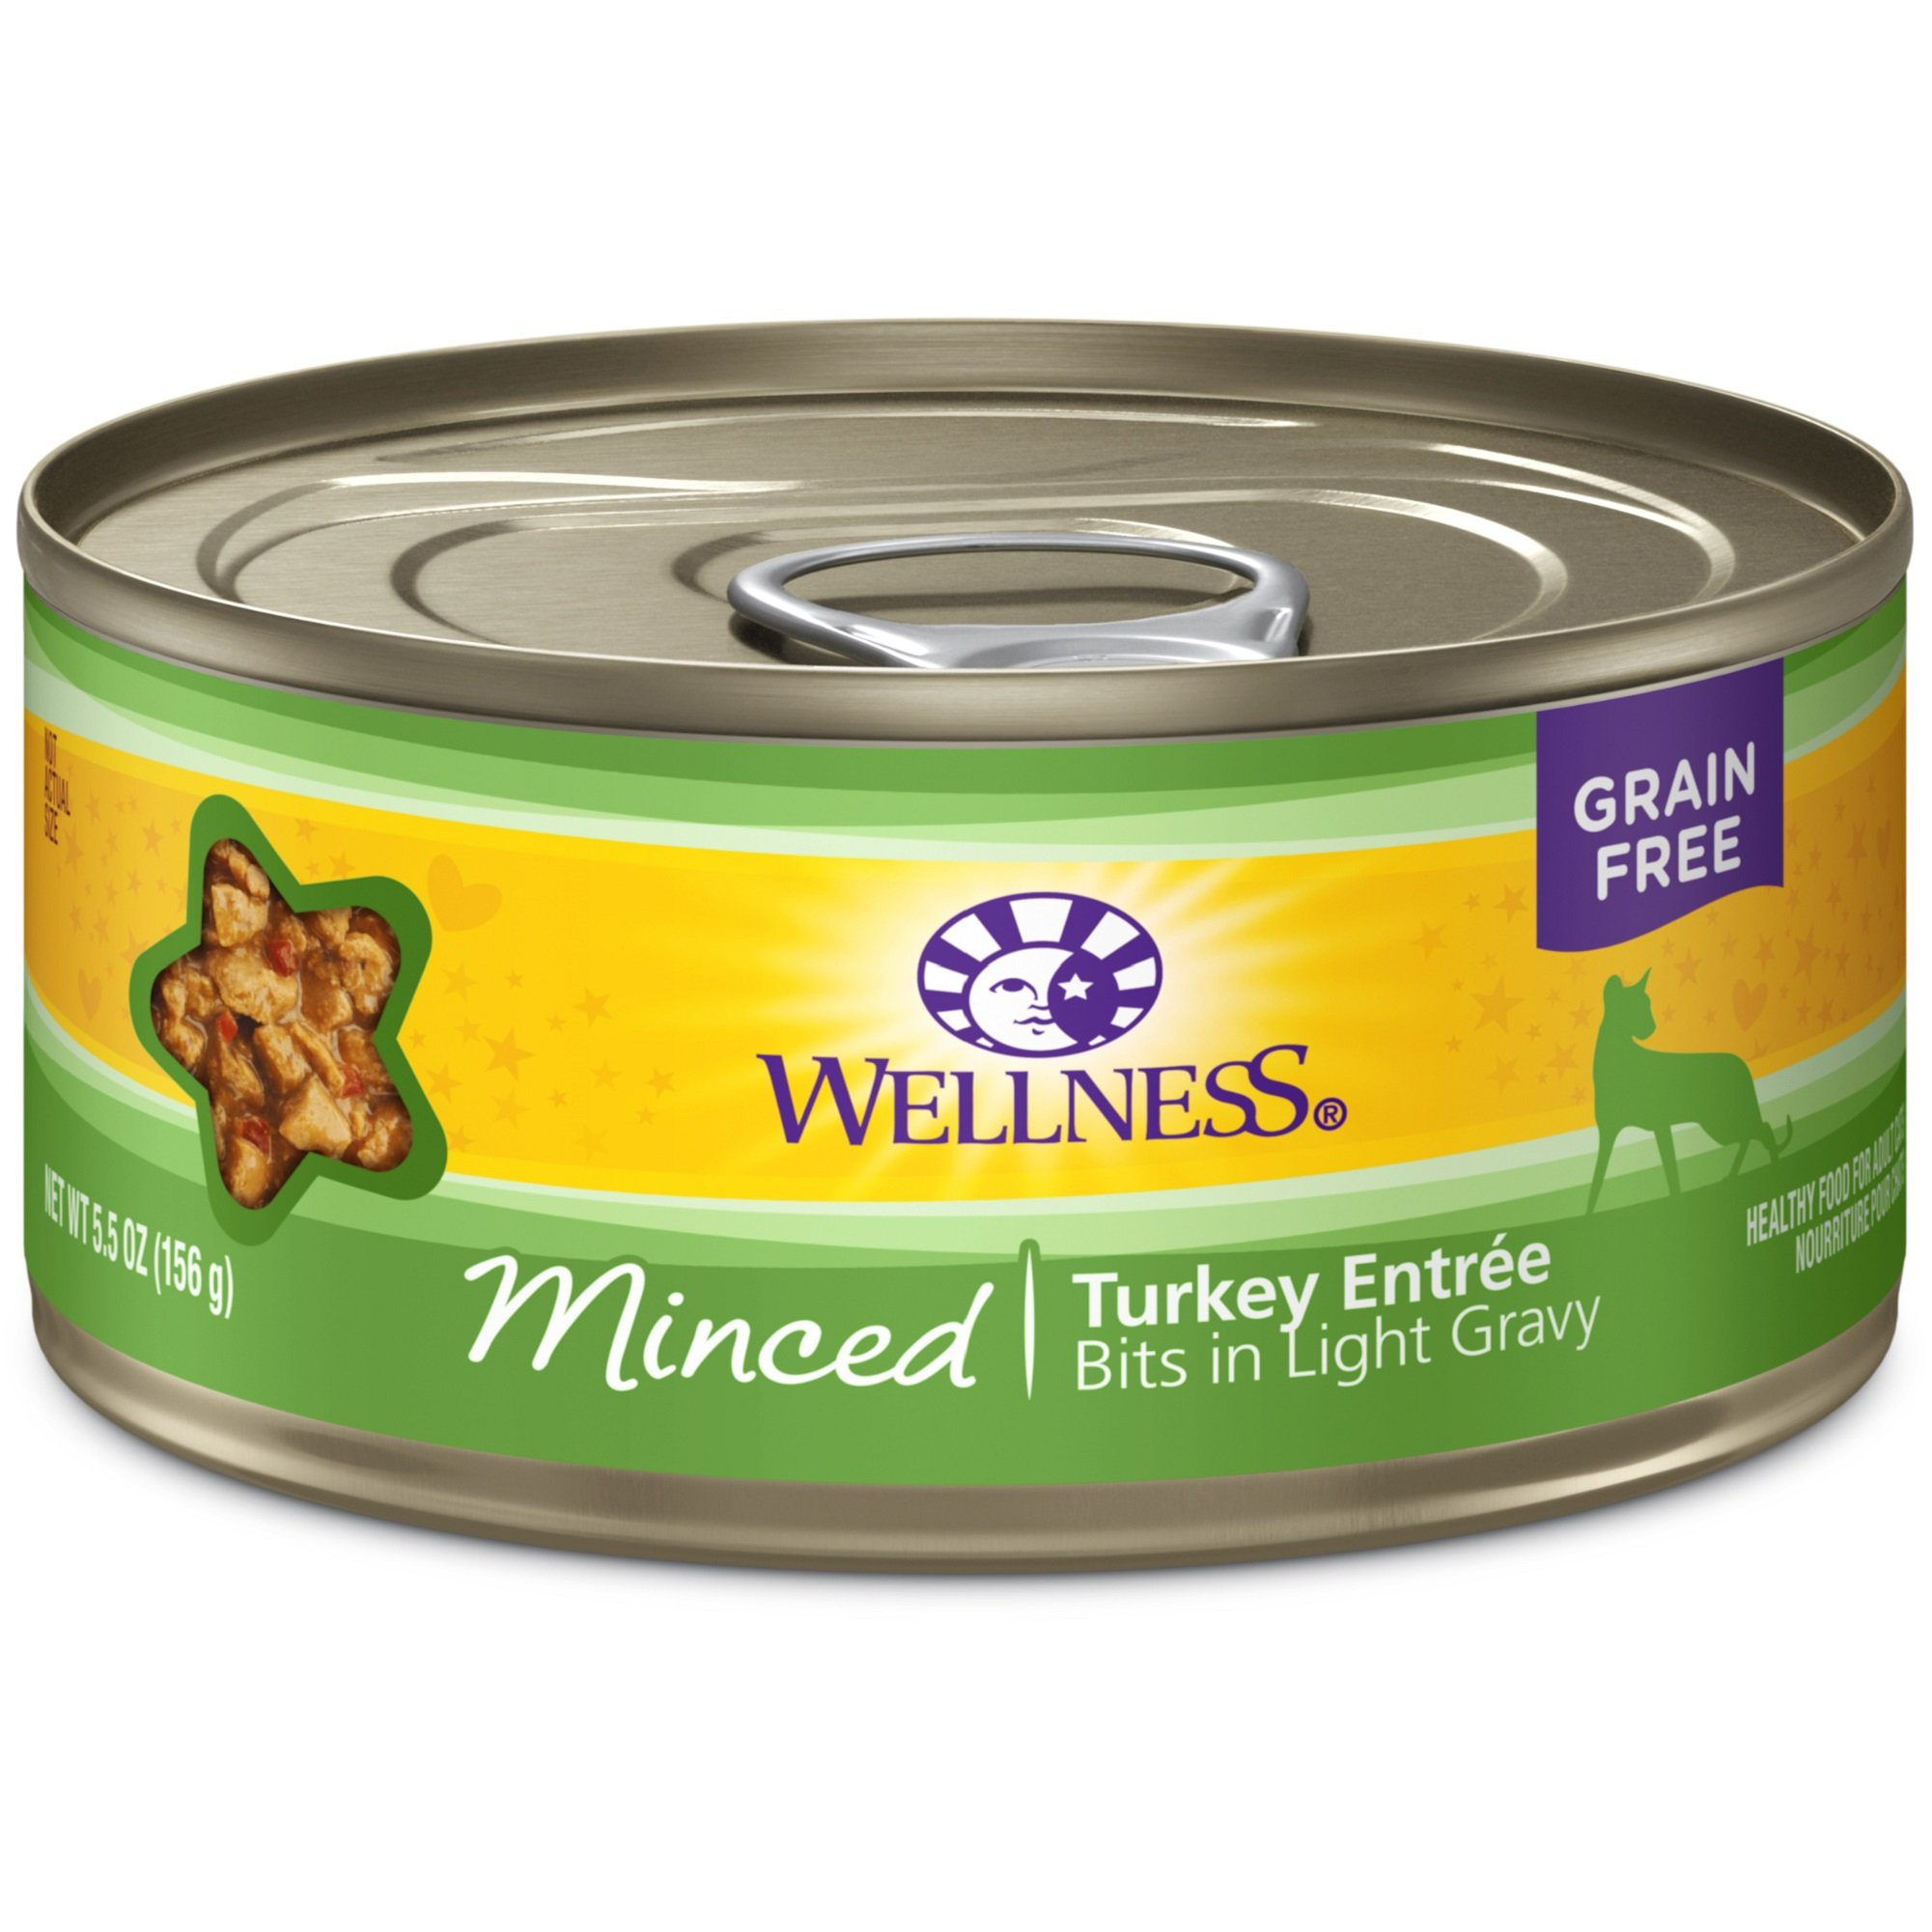 Wellness Complete Health Natural Grain Free Wet Canned Cat Food, Minced Turkey Entrée, 5.5-Ounce Can (Pack Of 24) by Wellness Natural Pet Food